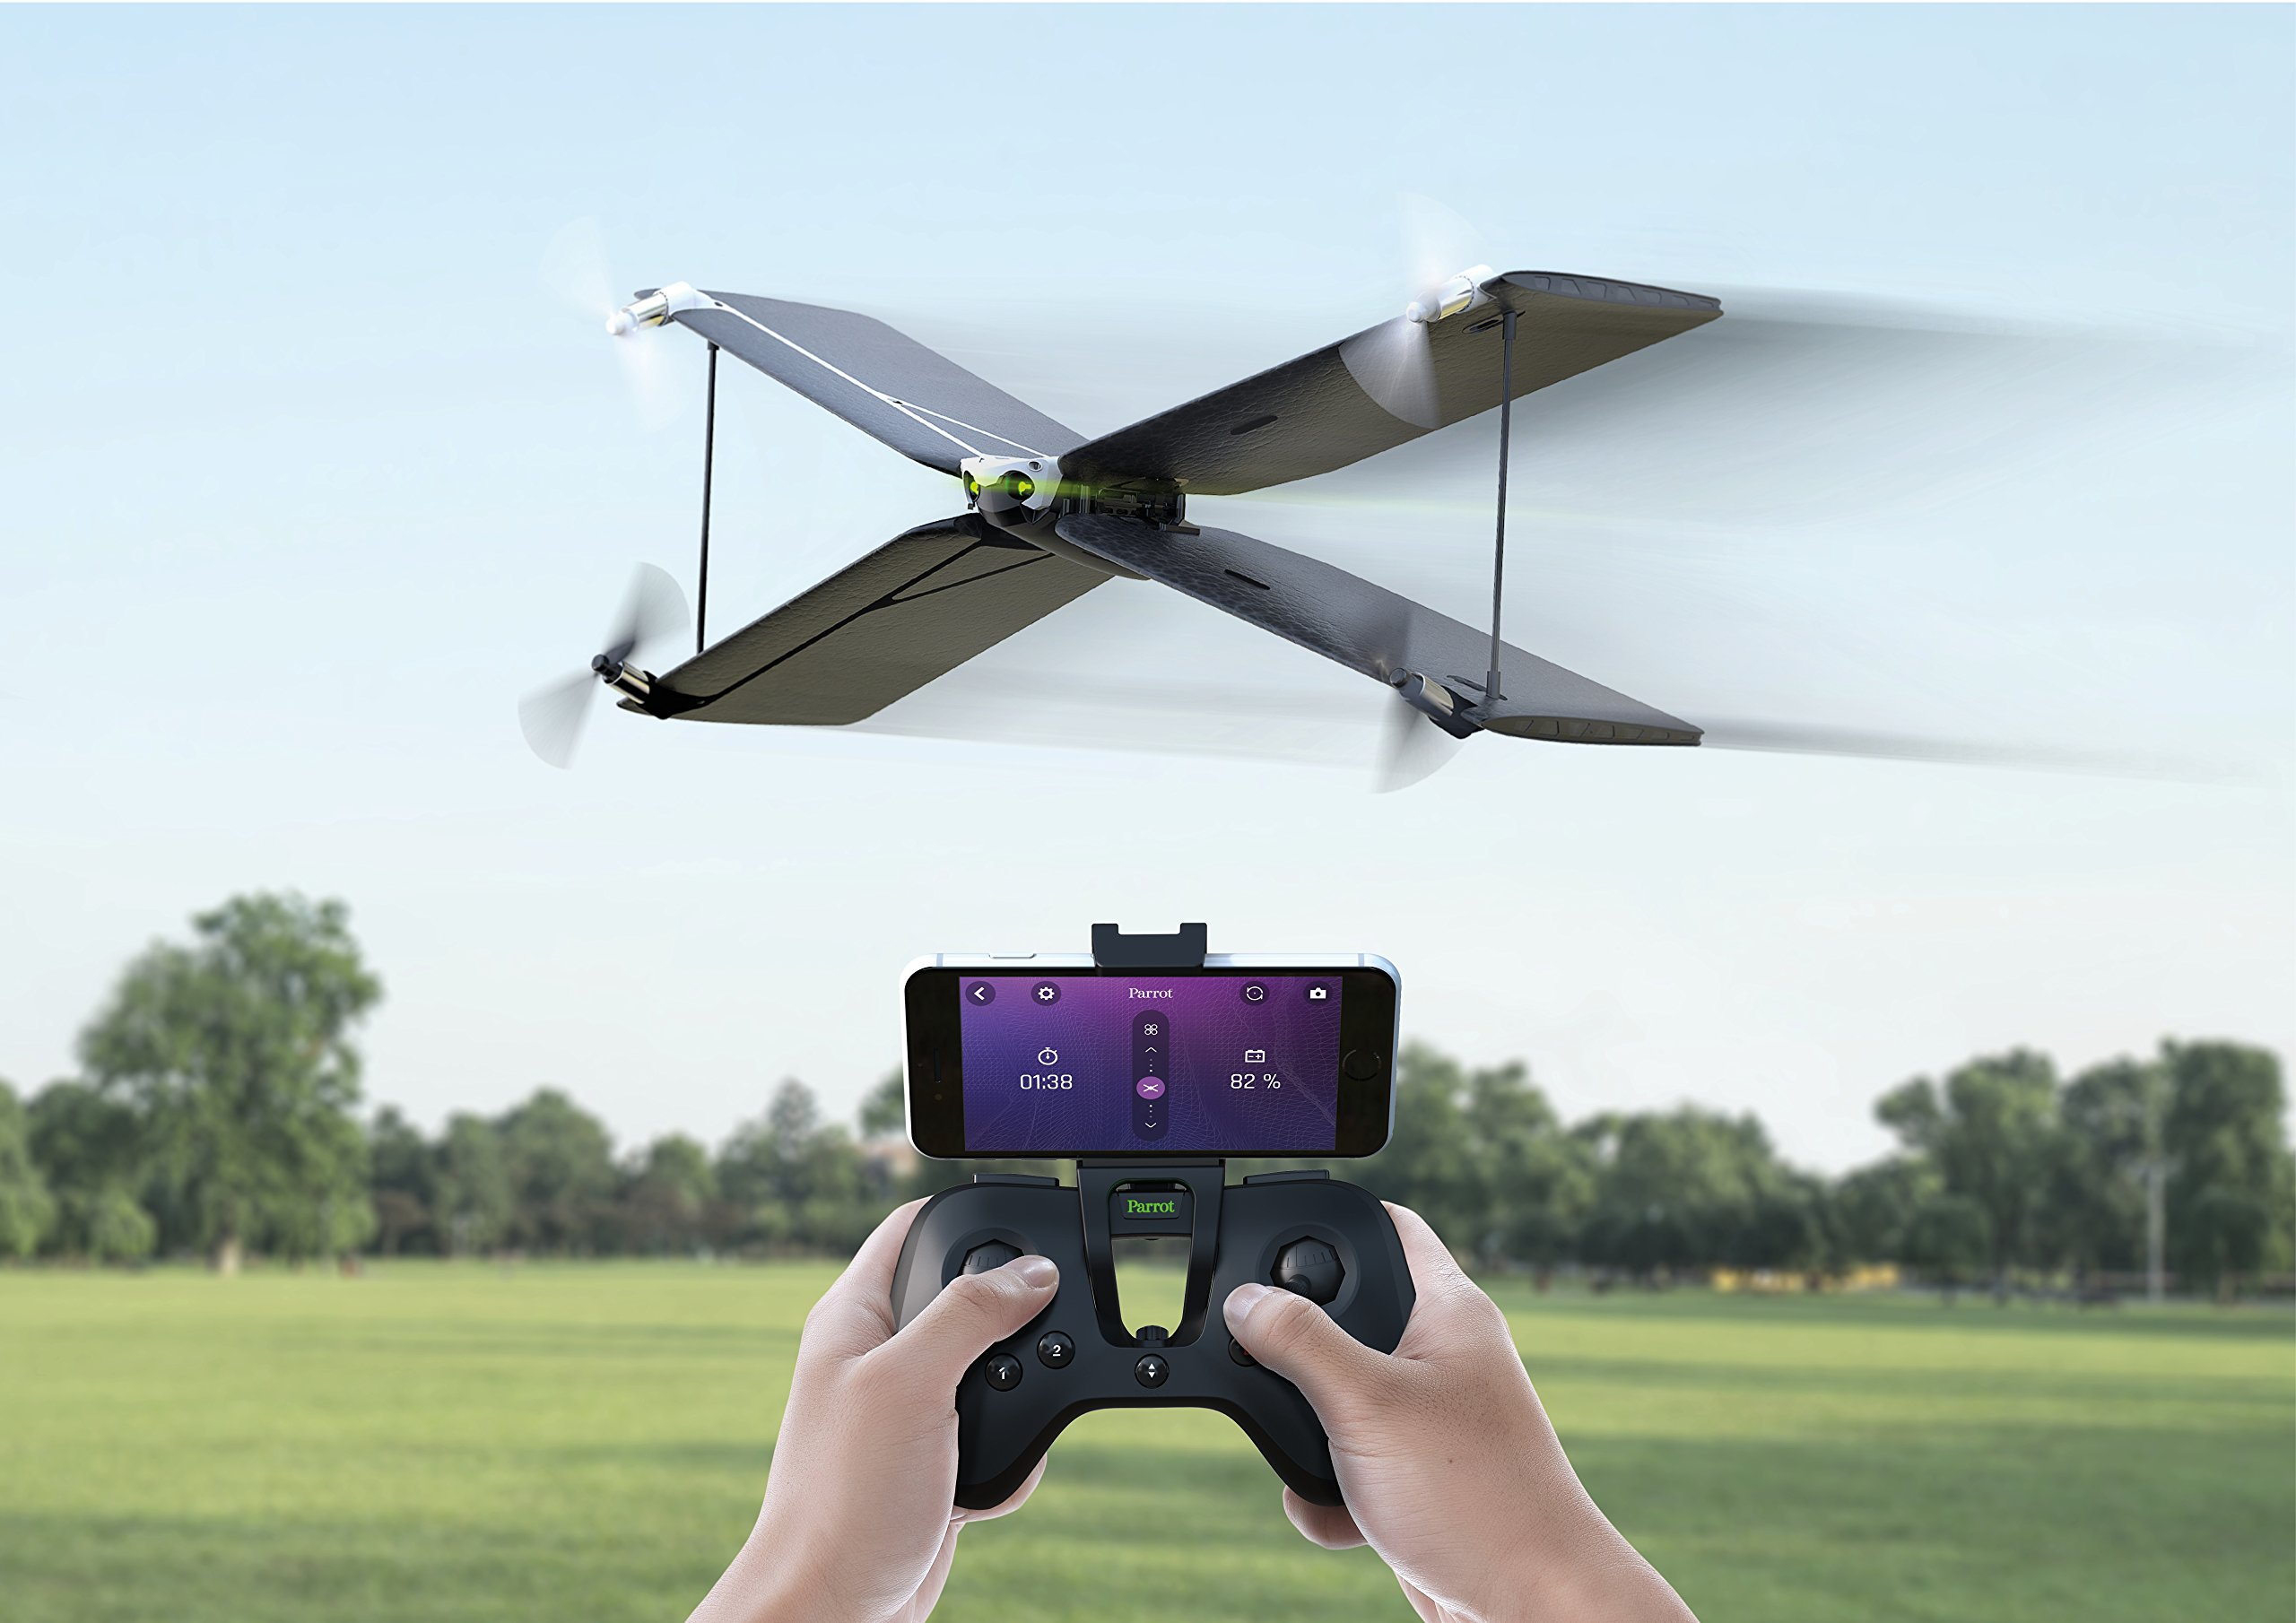 Parrot PF727003 Swing Quadcopter and Plane Minidrone with Flypad Controller